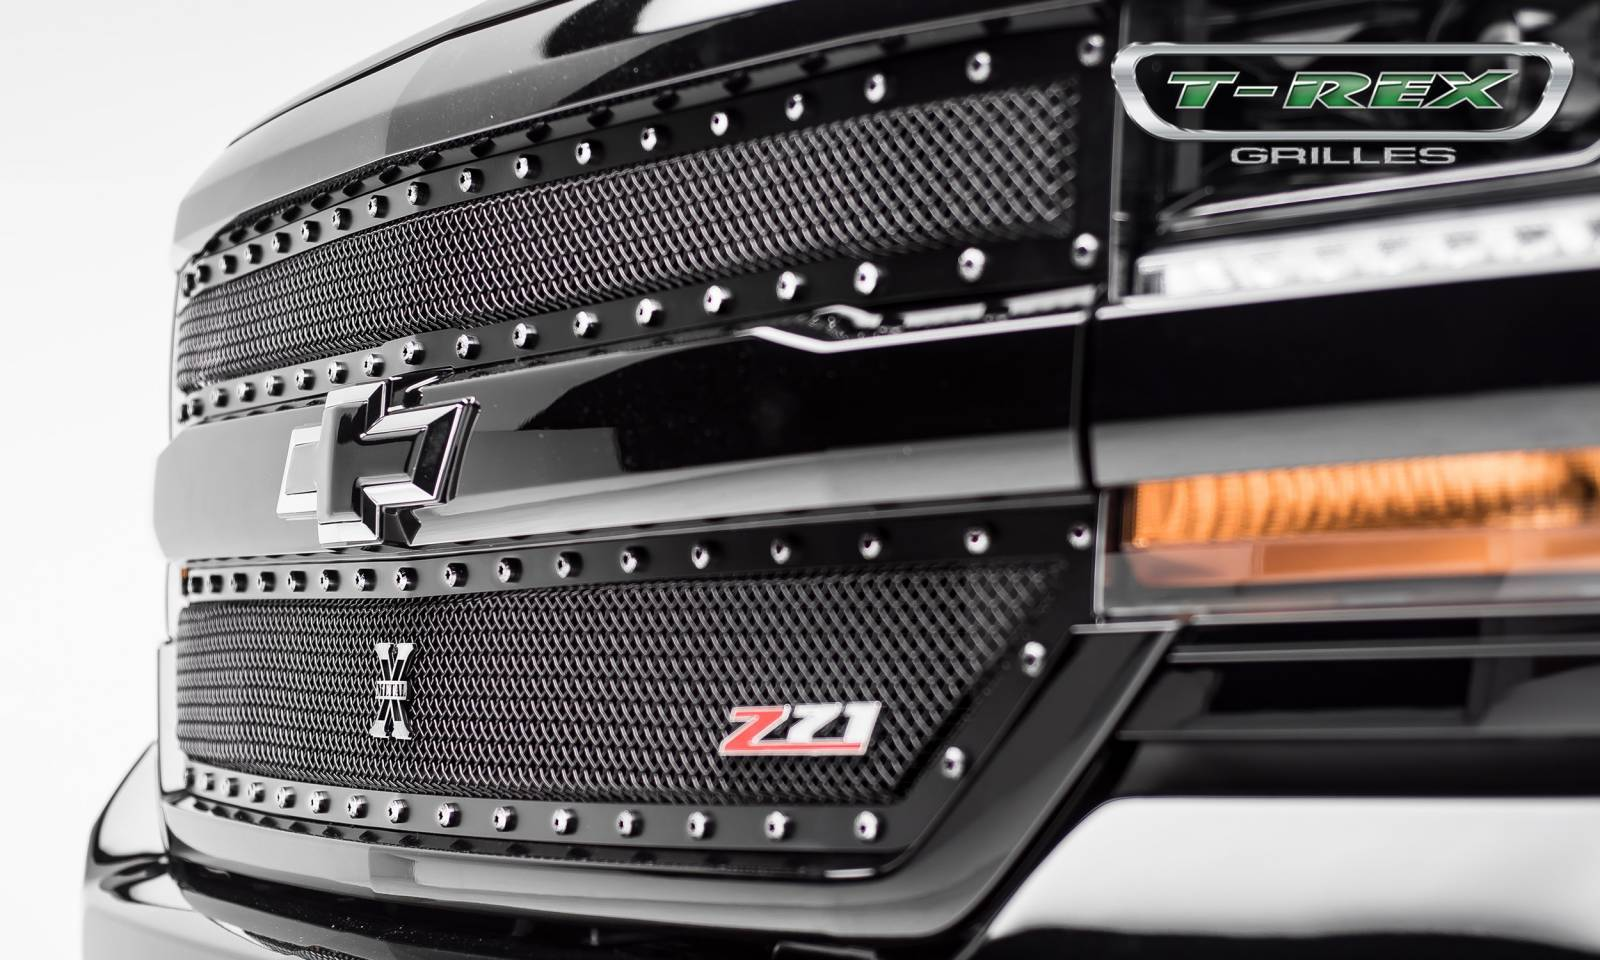 T-REX Chevrolet Silverado 1500 X-METAL Series, Powder Coated Black, 2 Pc Main Grille Overlay - Fits Z71 Only - Pt # 6711241